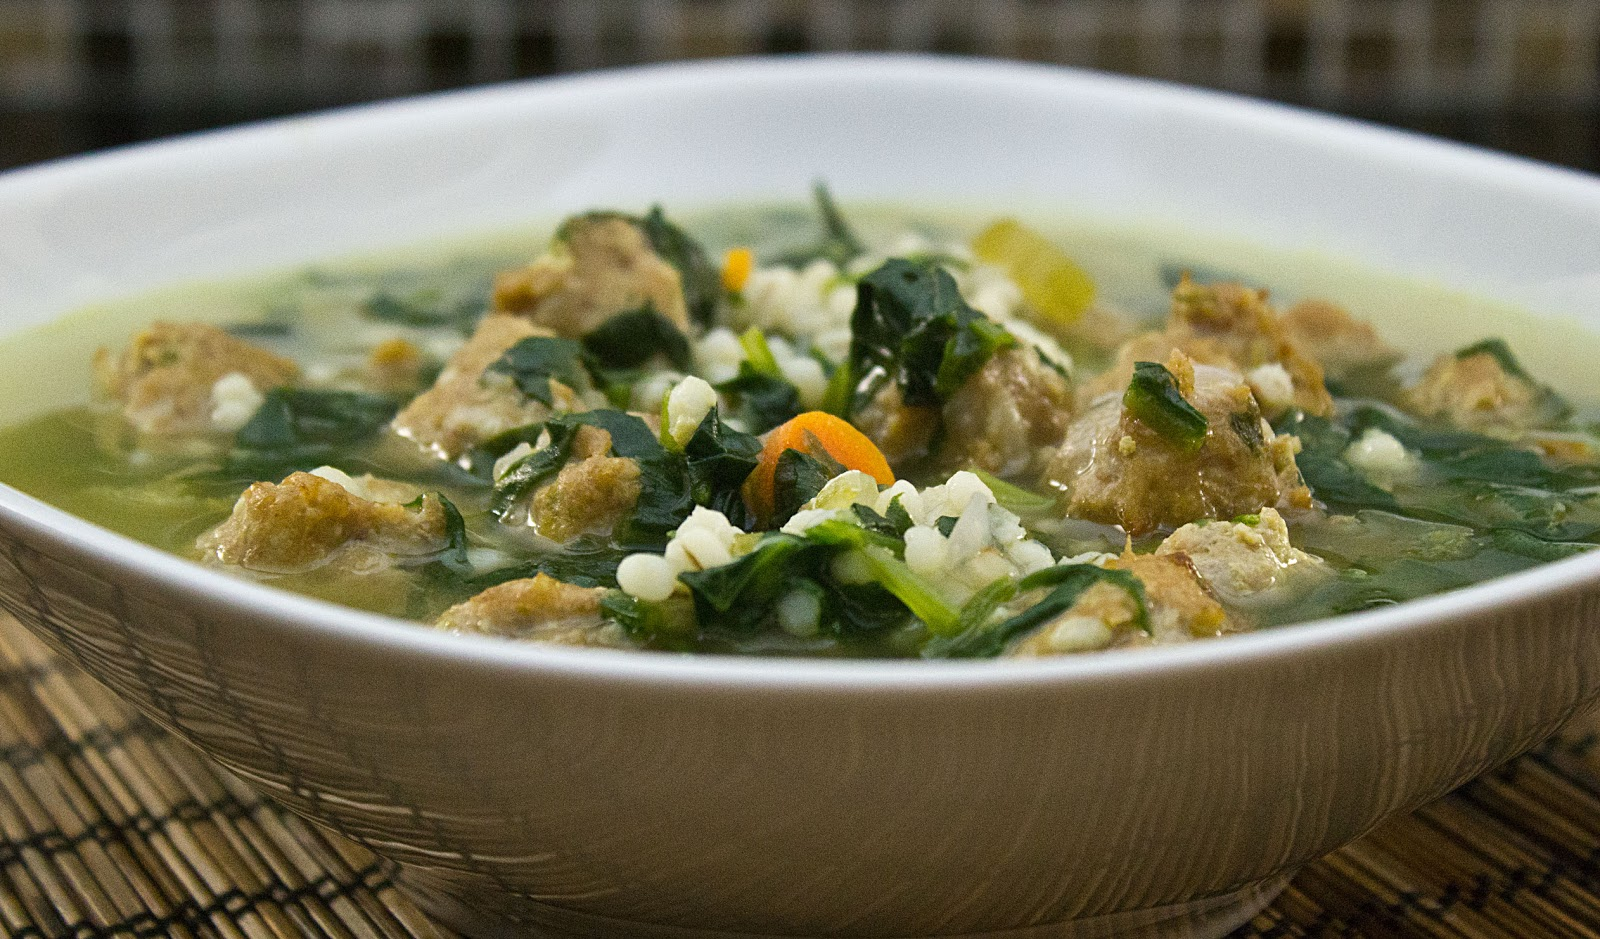 italian wedding soup with spinach and barley